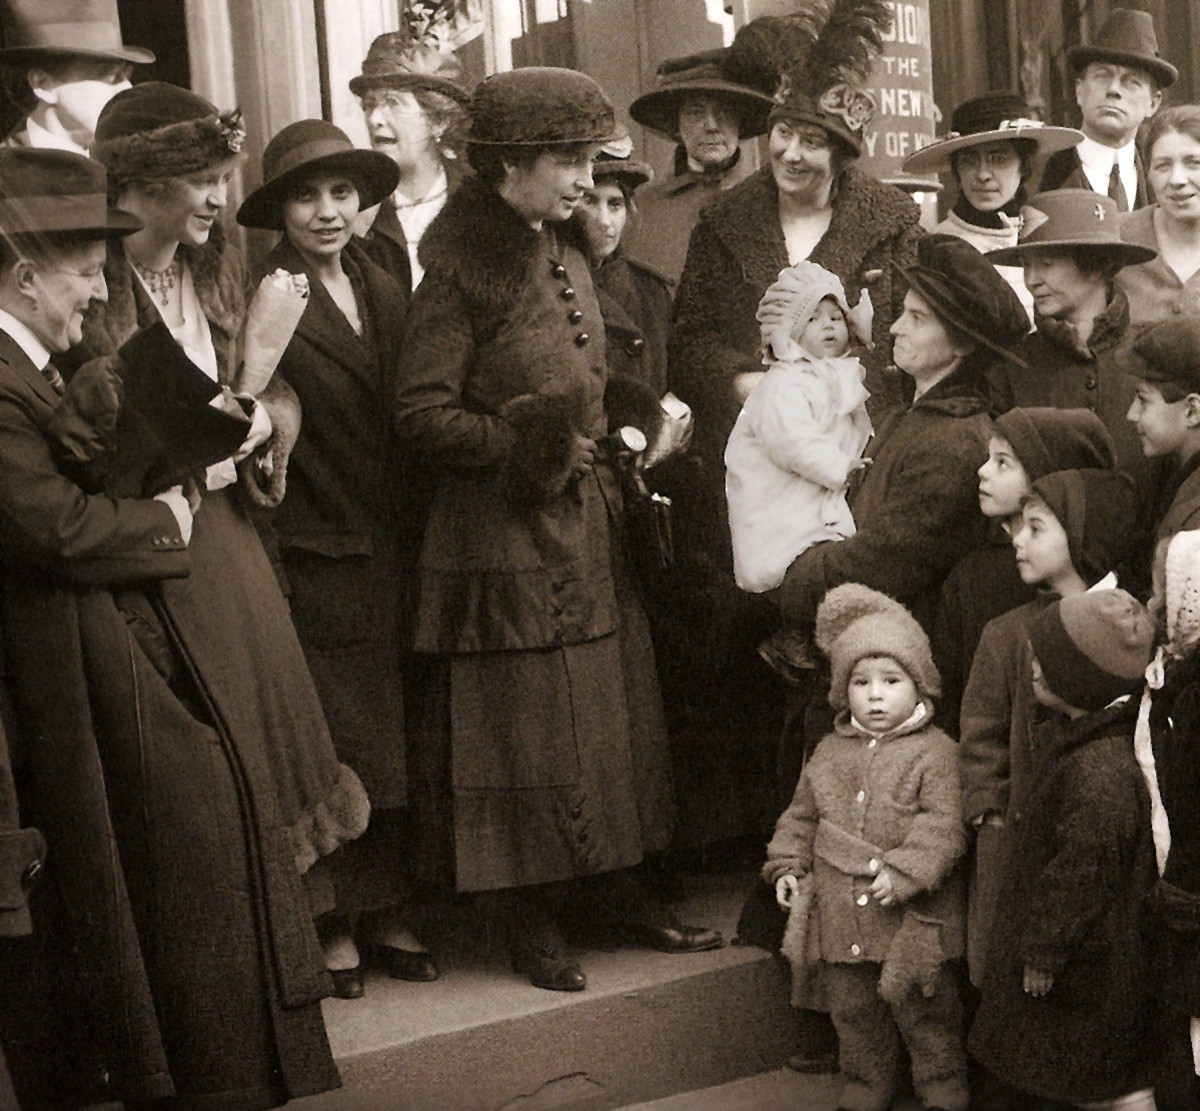 Margaret Sanger and her sister Ethyl Byrne, on the steps of a courthouse in Brooklyn, New York, on January 8, 1917. This photo was taken during a trial accusing Sanger and others for opening a birth control clinic in New York. Both were found guilty.